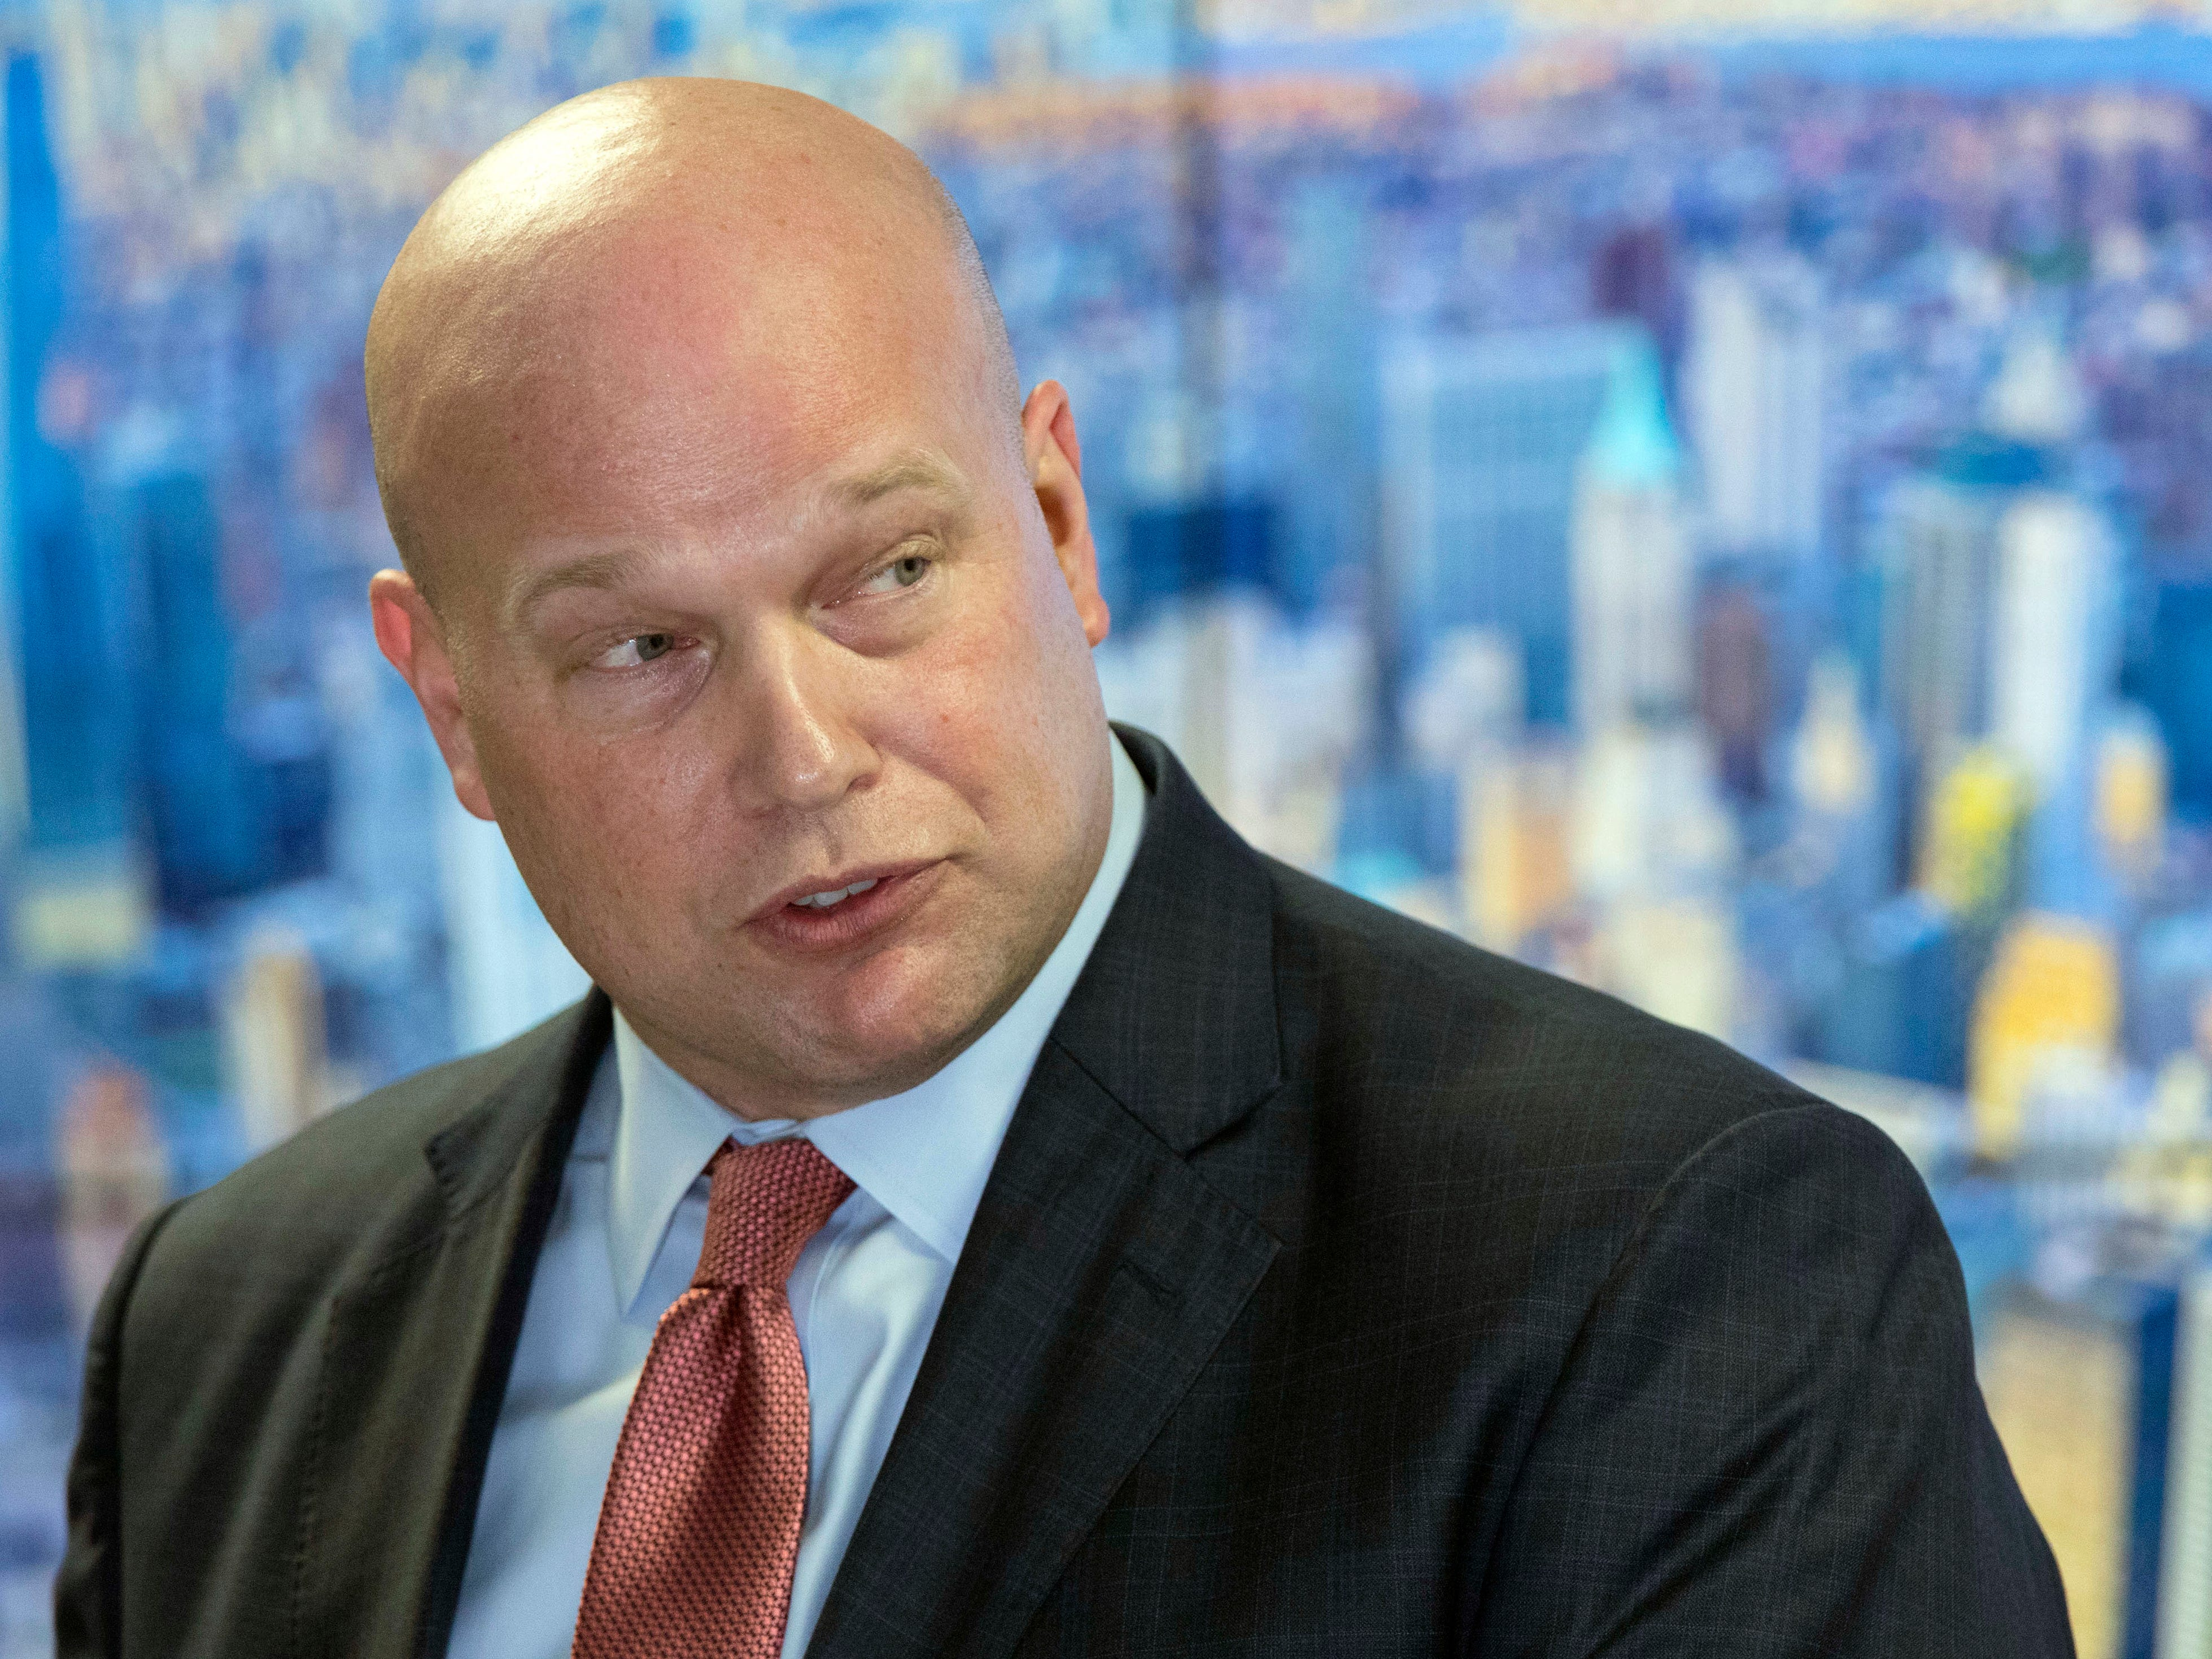 Matthew Whitaker is the Acting Attorney General, which former cyclist Floyd Landis is challenging as part of his settlement with the Department of Justice.